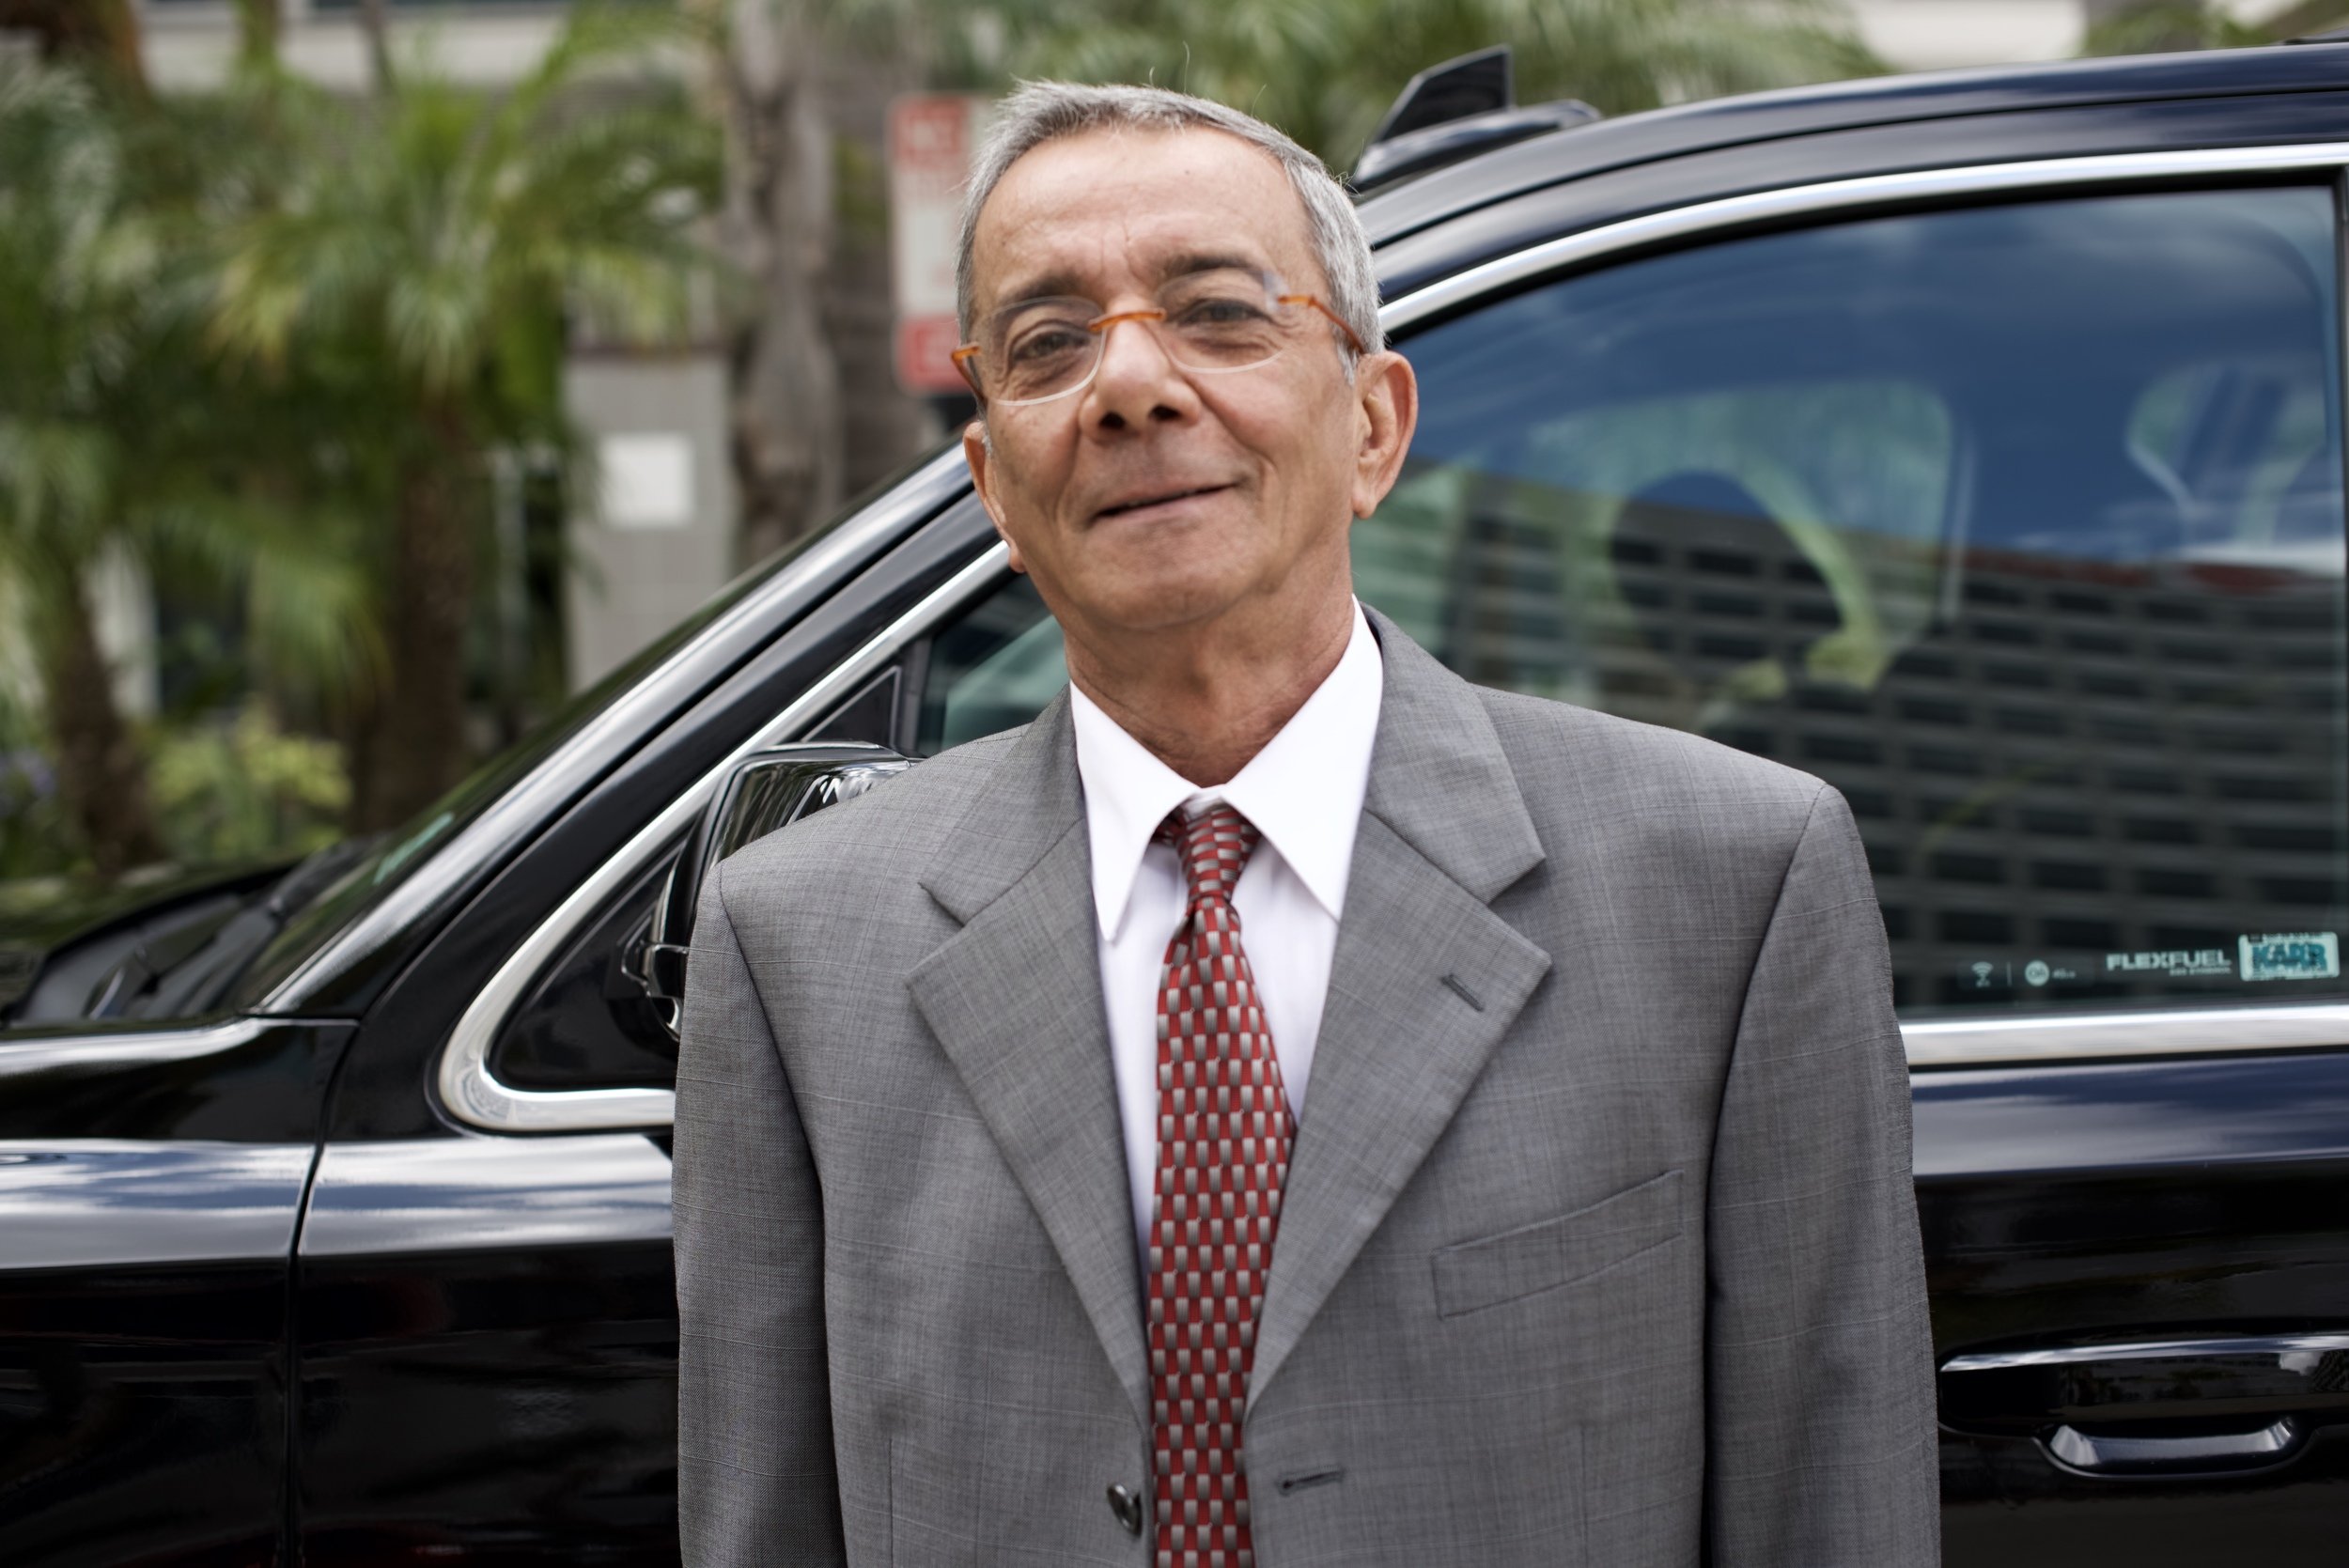 "Meet Adel from Egypt.  A driver for Crown Limo, he pulled up in a black Chevy Suburban to take me and my 9ft. board bag to LAX - not a small task.  After laying down the seats and resting the nose of my bag on the center console, he shrugged off any stress seeming to suggest - ""All in a day's work.""  His peaceful presence made getting to the airport a breeze."